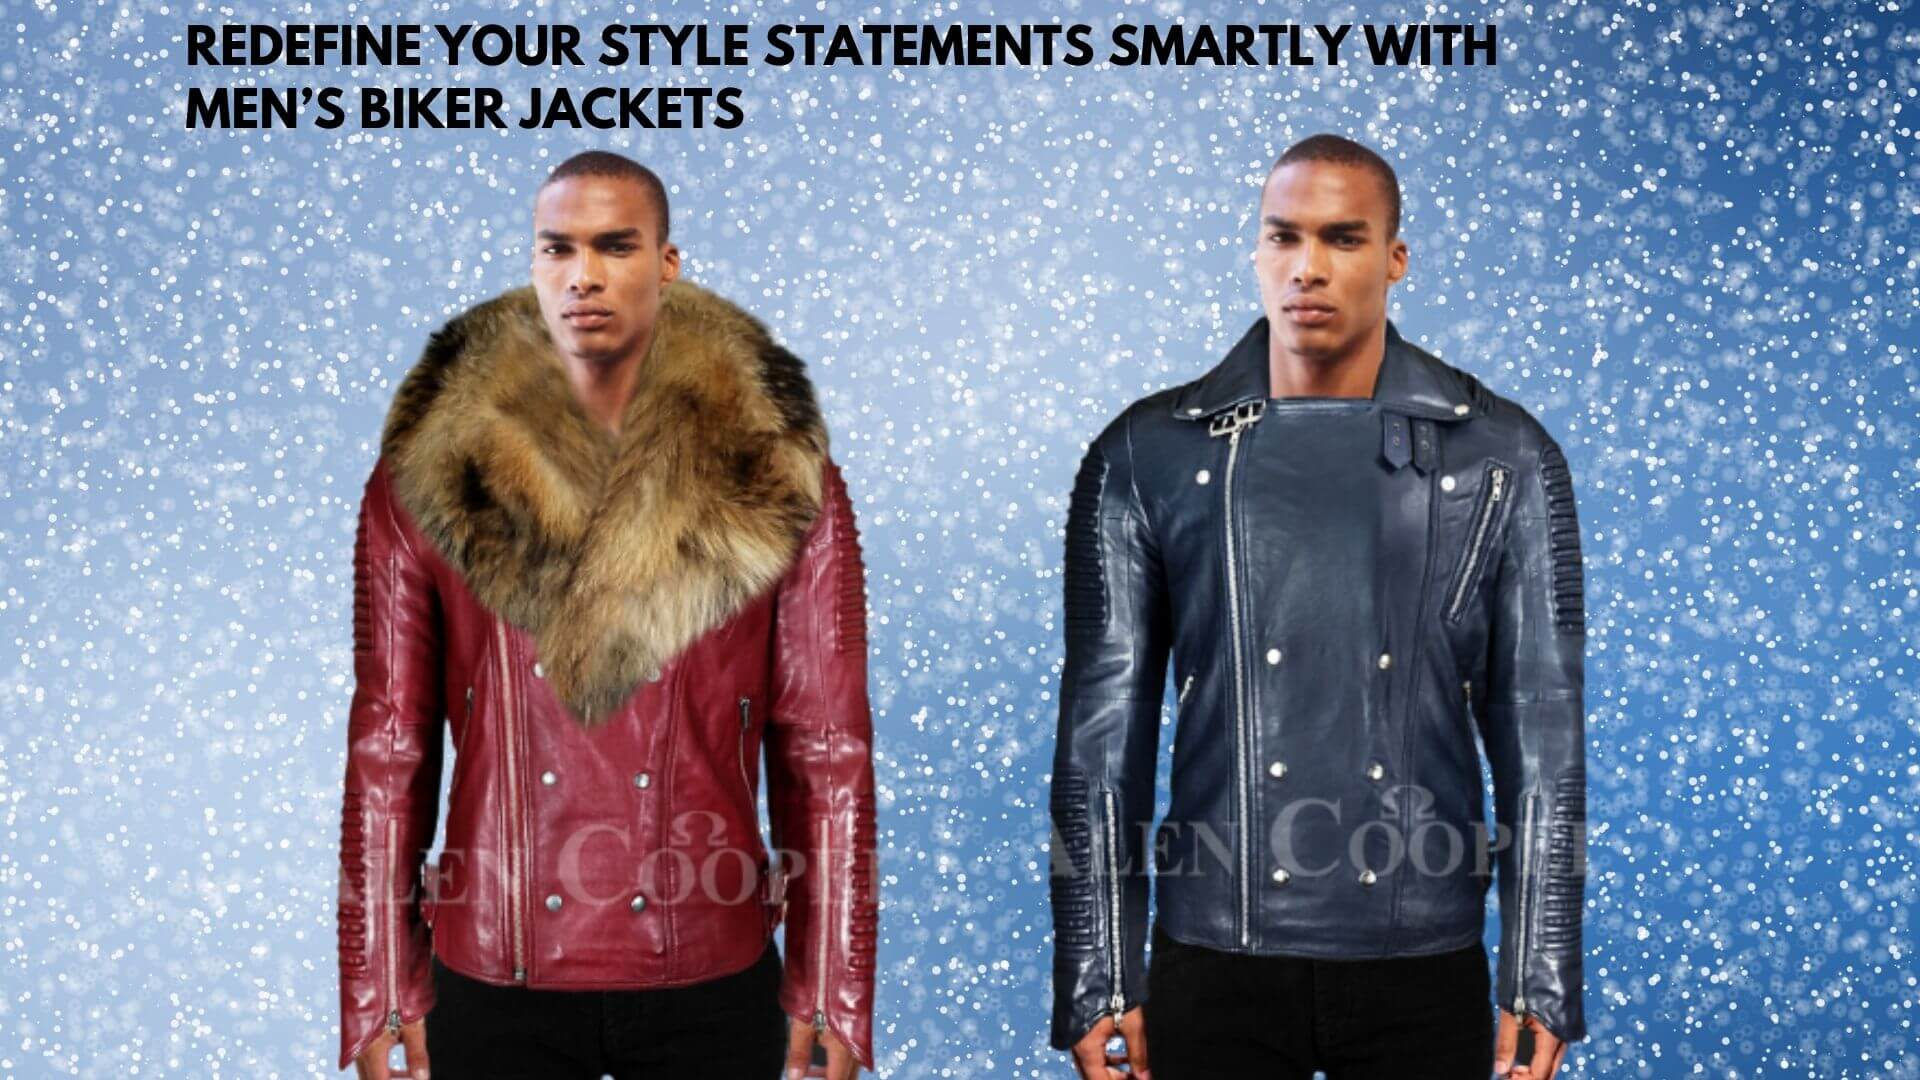 REDEFINE YOUR STYLE STATEMENTS SMARTLY WITH MENS BIKER JACKETS